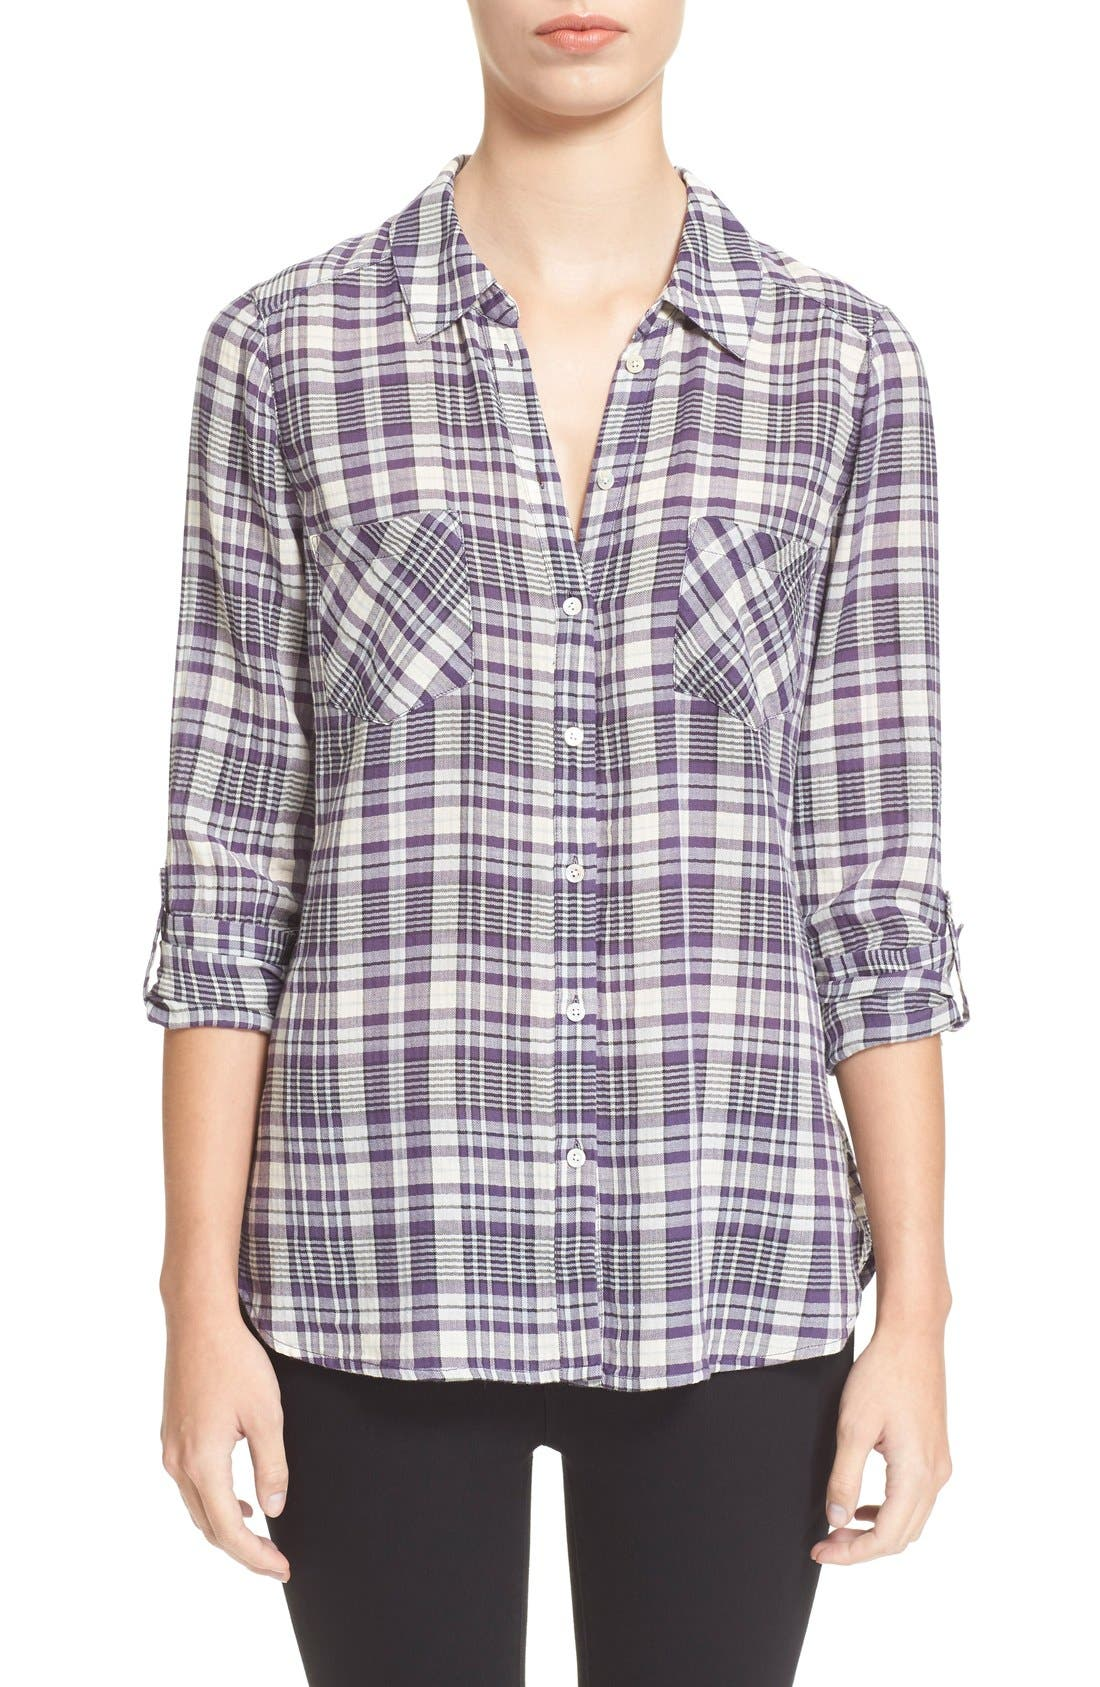 Alternate Image 1 Selected - Joie 'Aidan' Woven Plaid Shirt